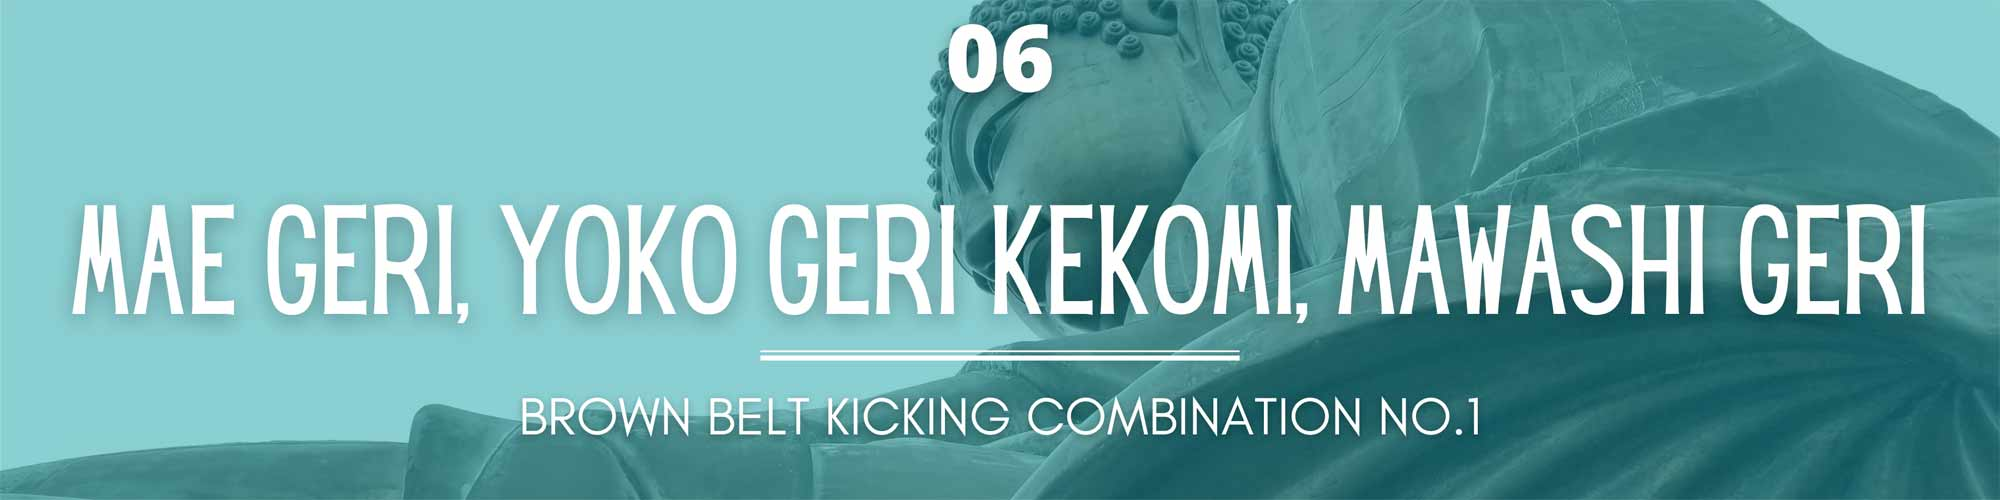 brown belt kicking combination 1